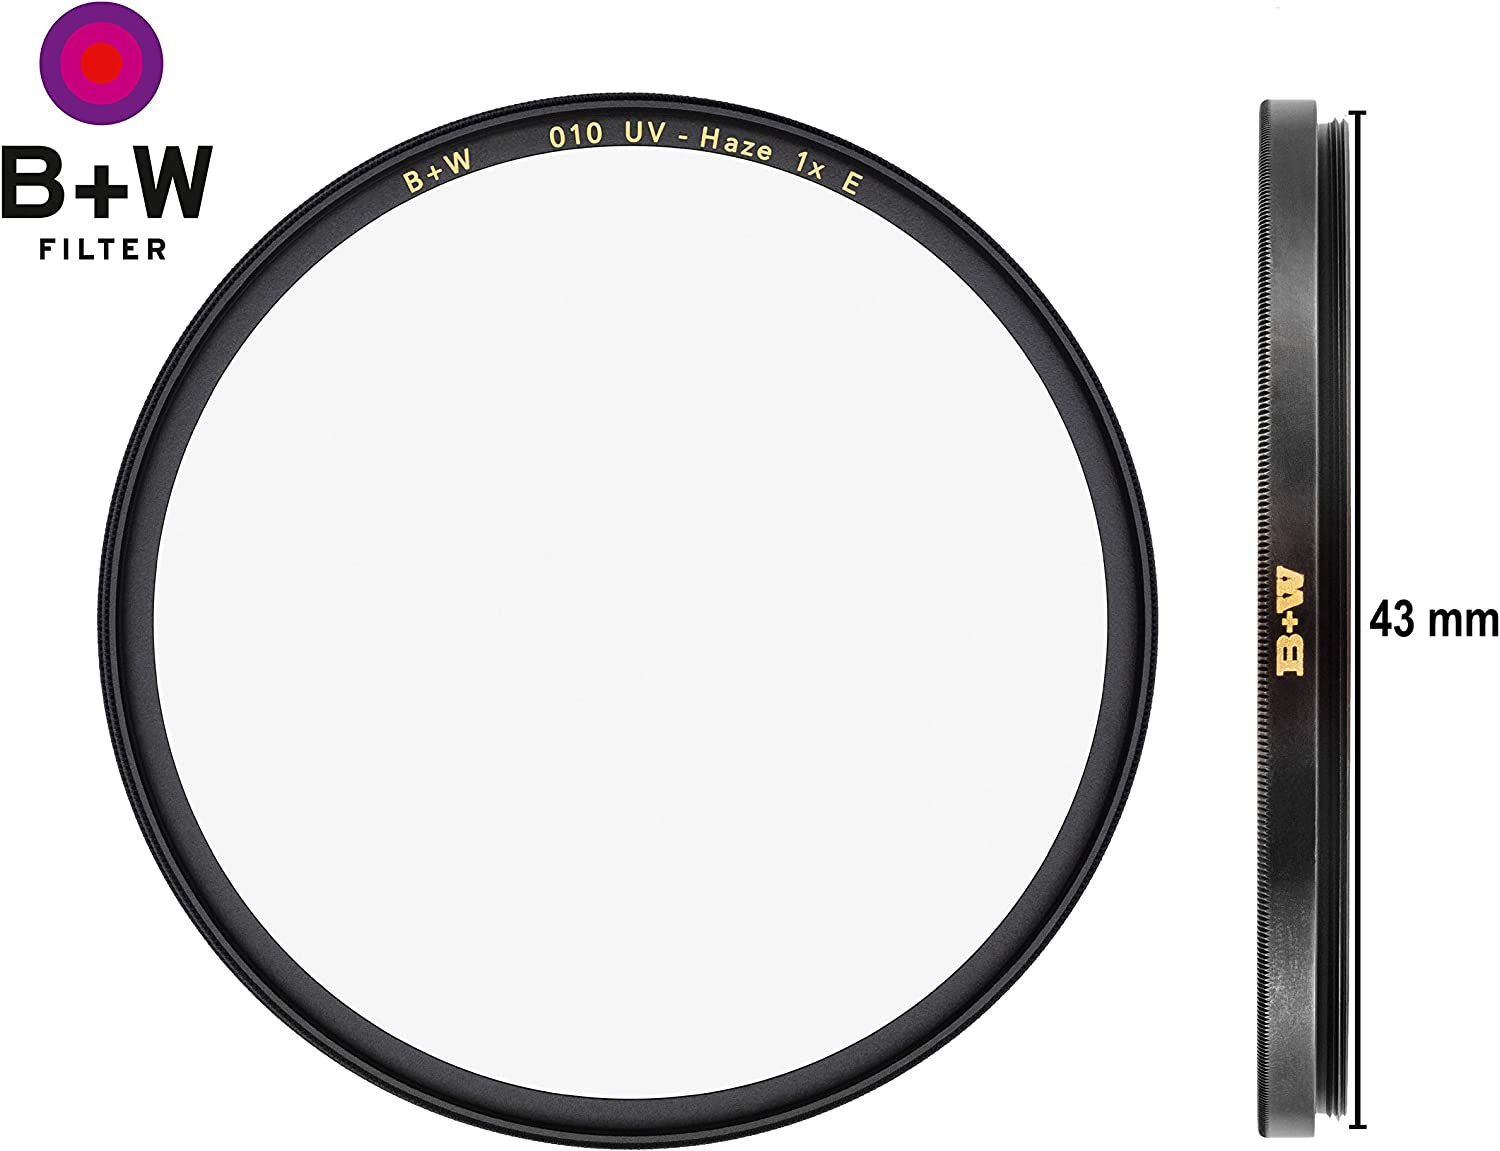 2 Layers Resistant Coating 39 mm Standard Mount for Camera Lens F-PRO Clear Protector E Coating Photography Filter B W 39mm UV Protection Filter 010